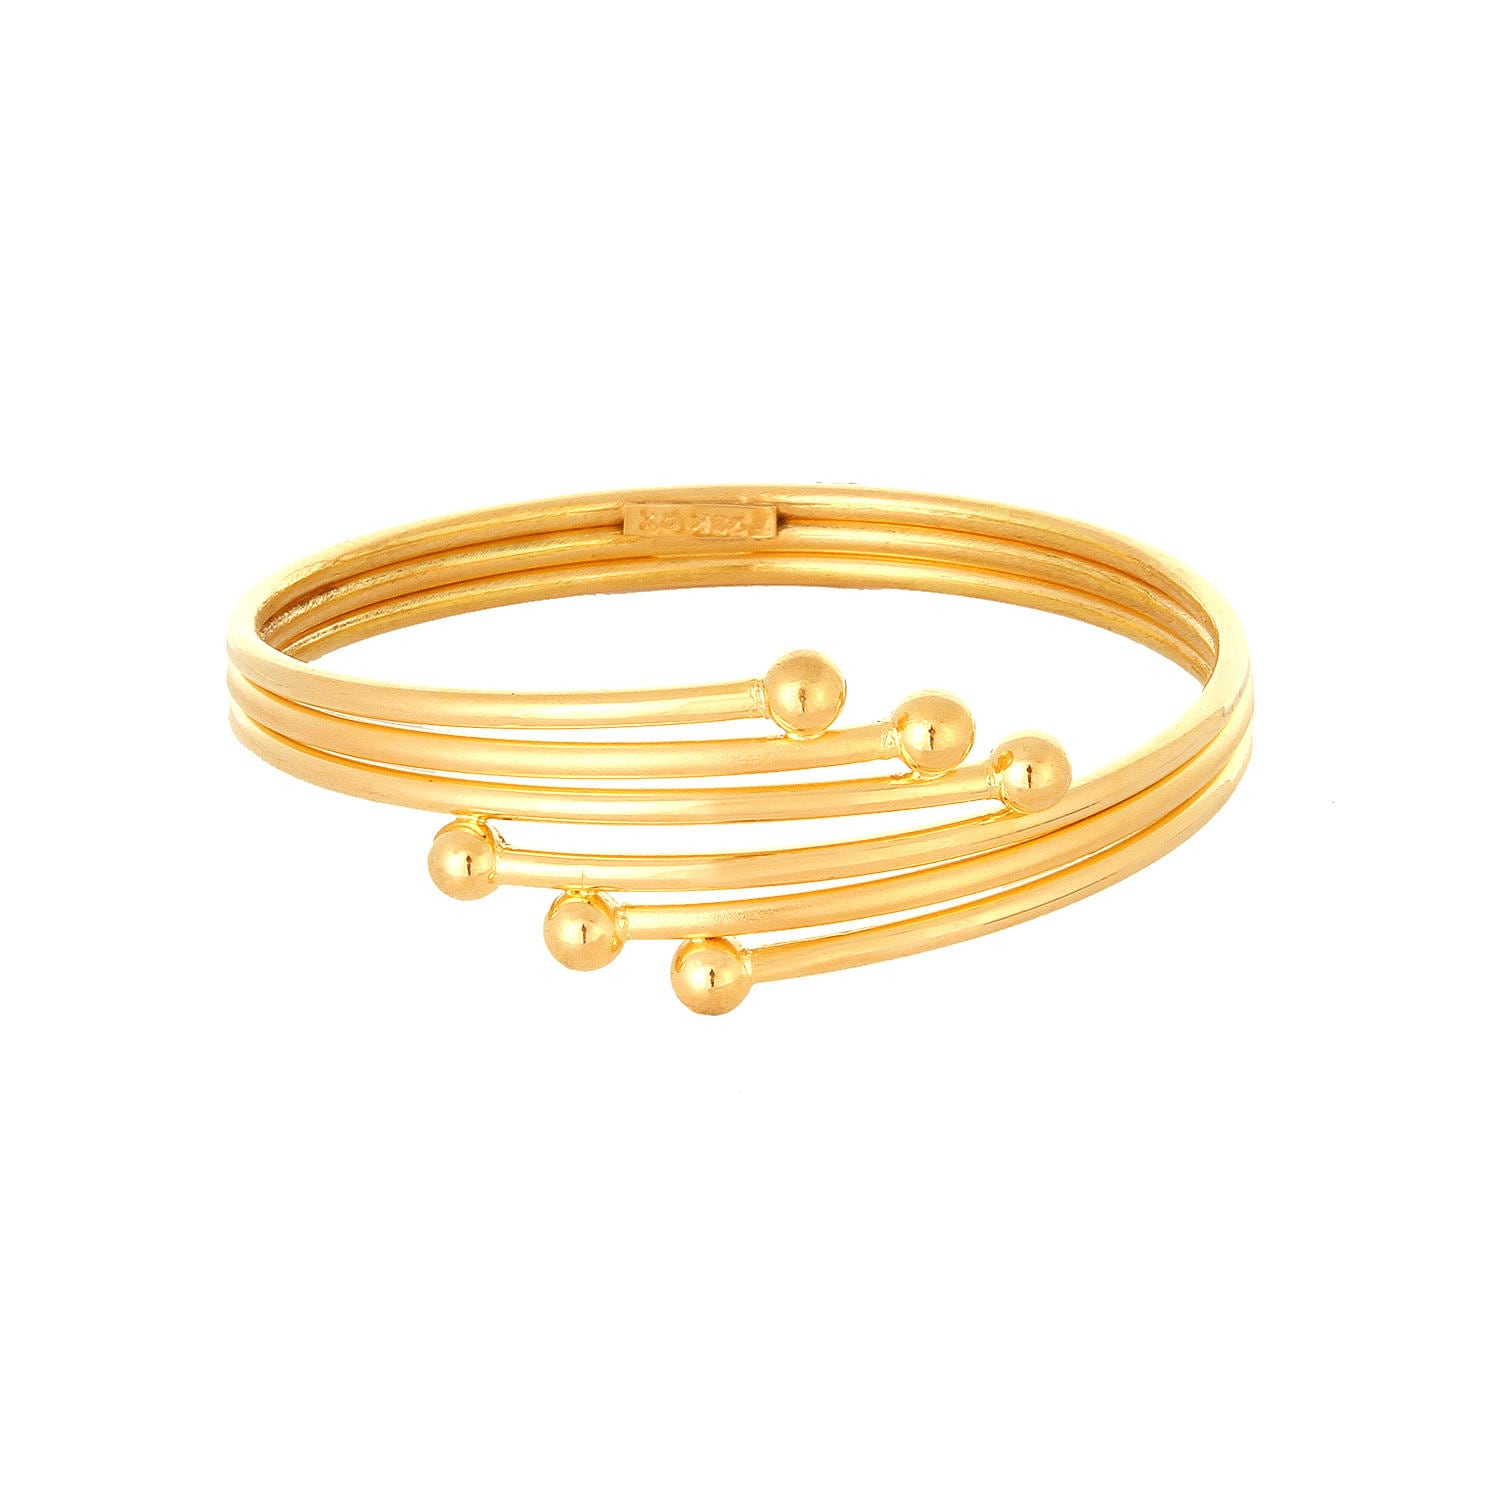 family jewellery carat plain bangles image browns s bracelet gold women bangle jewellers